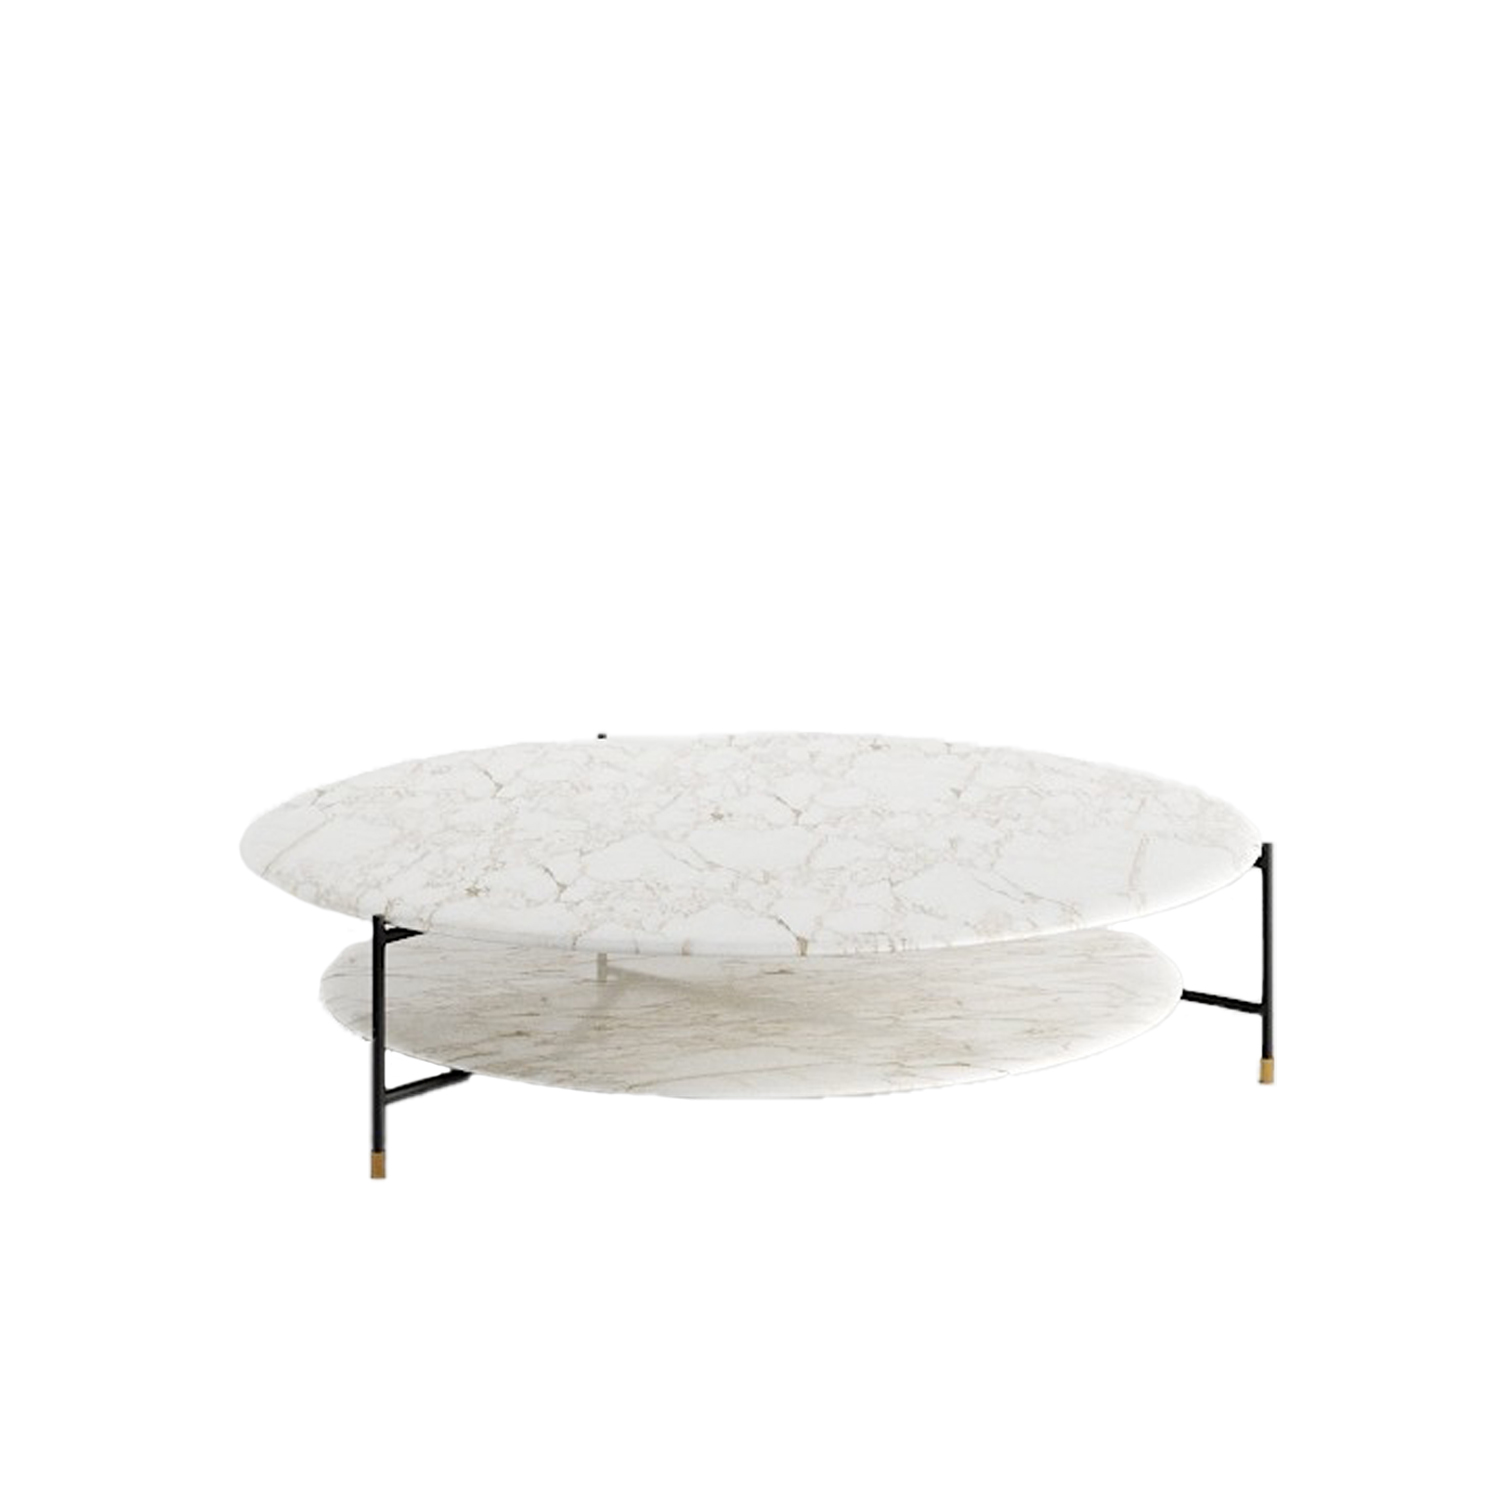 Adrian Round 130R Low Table